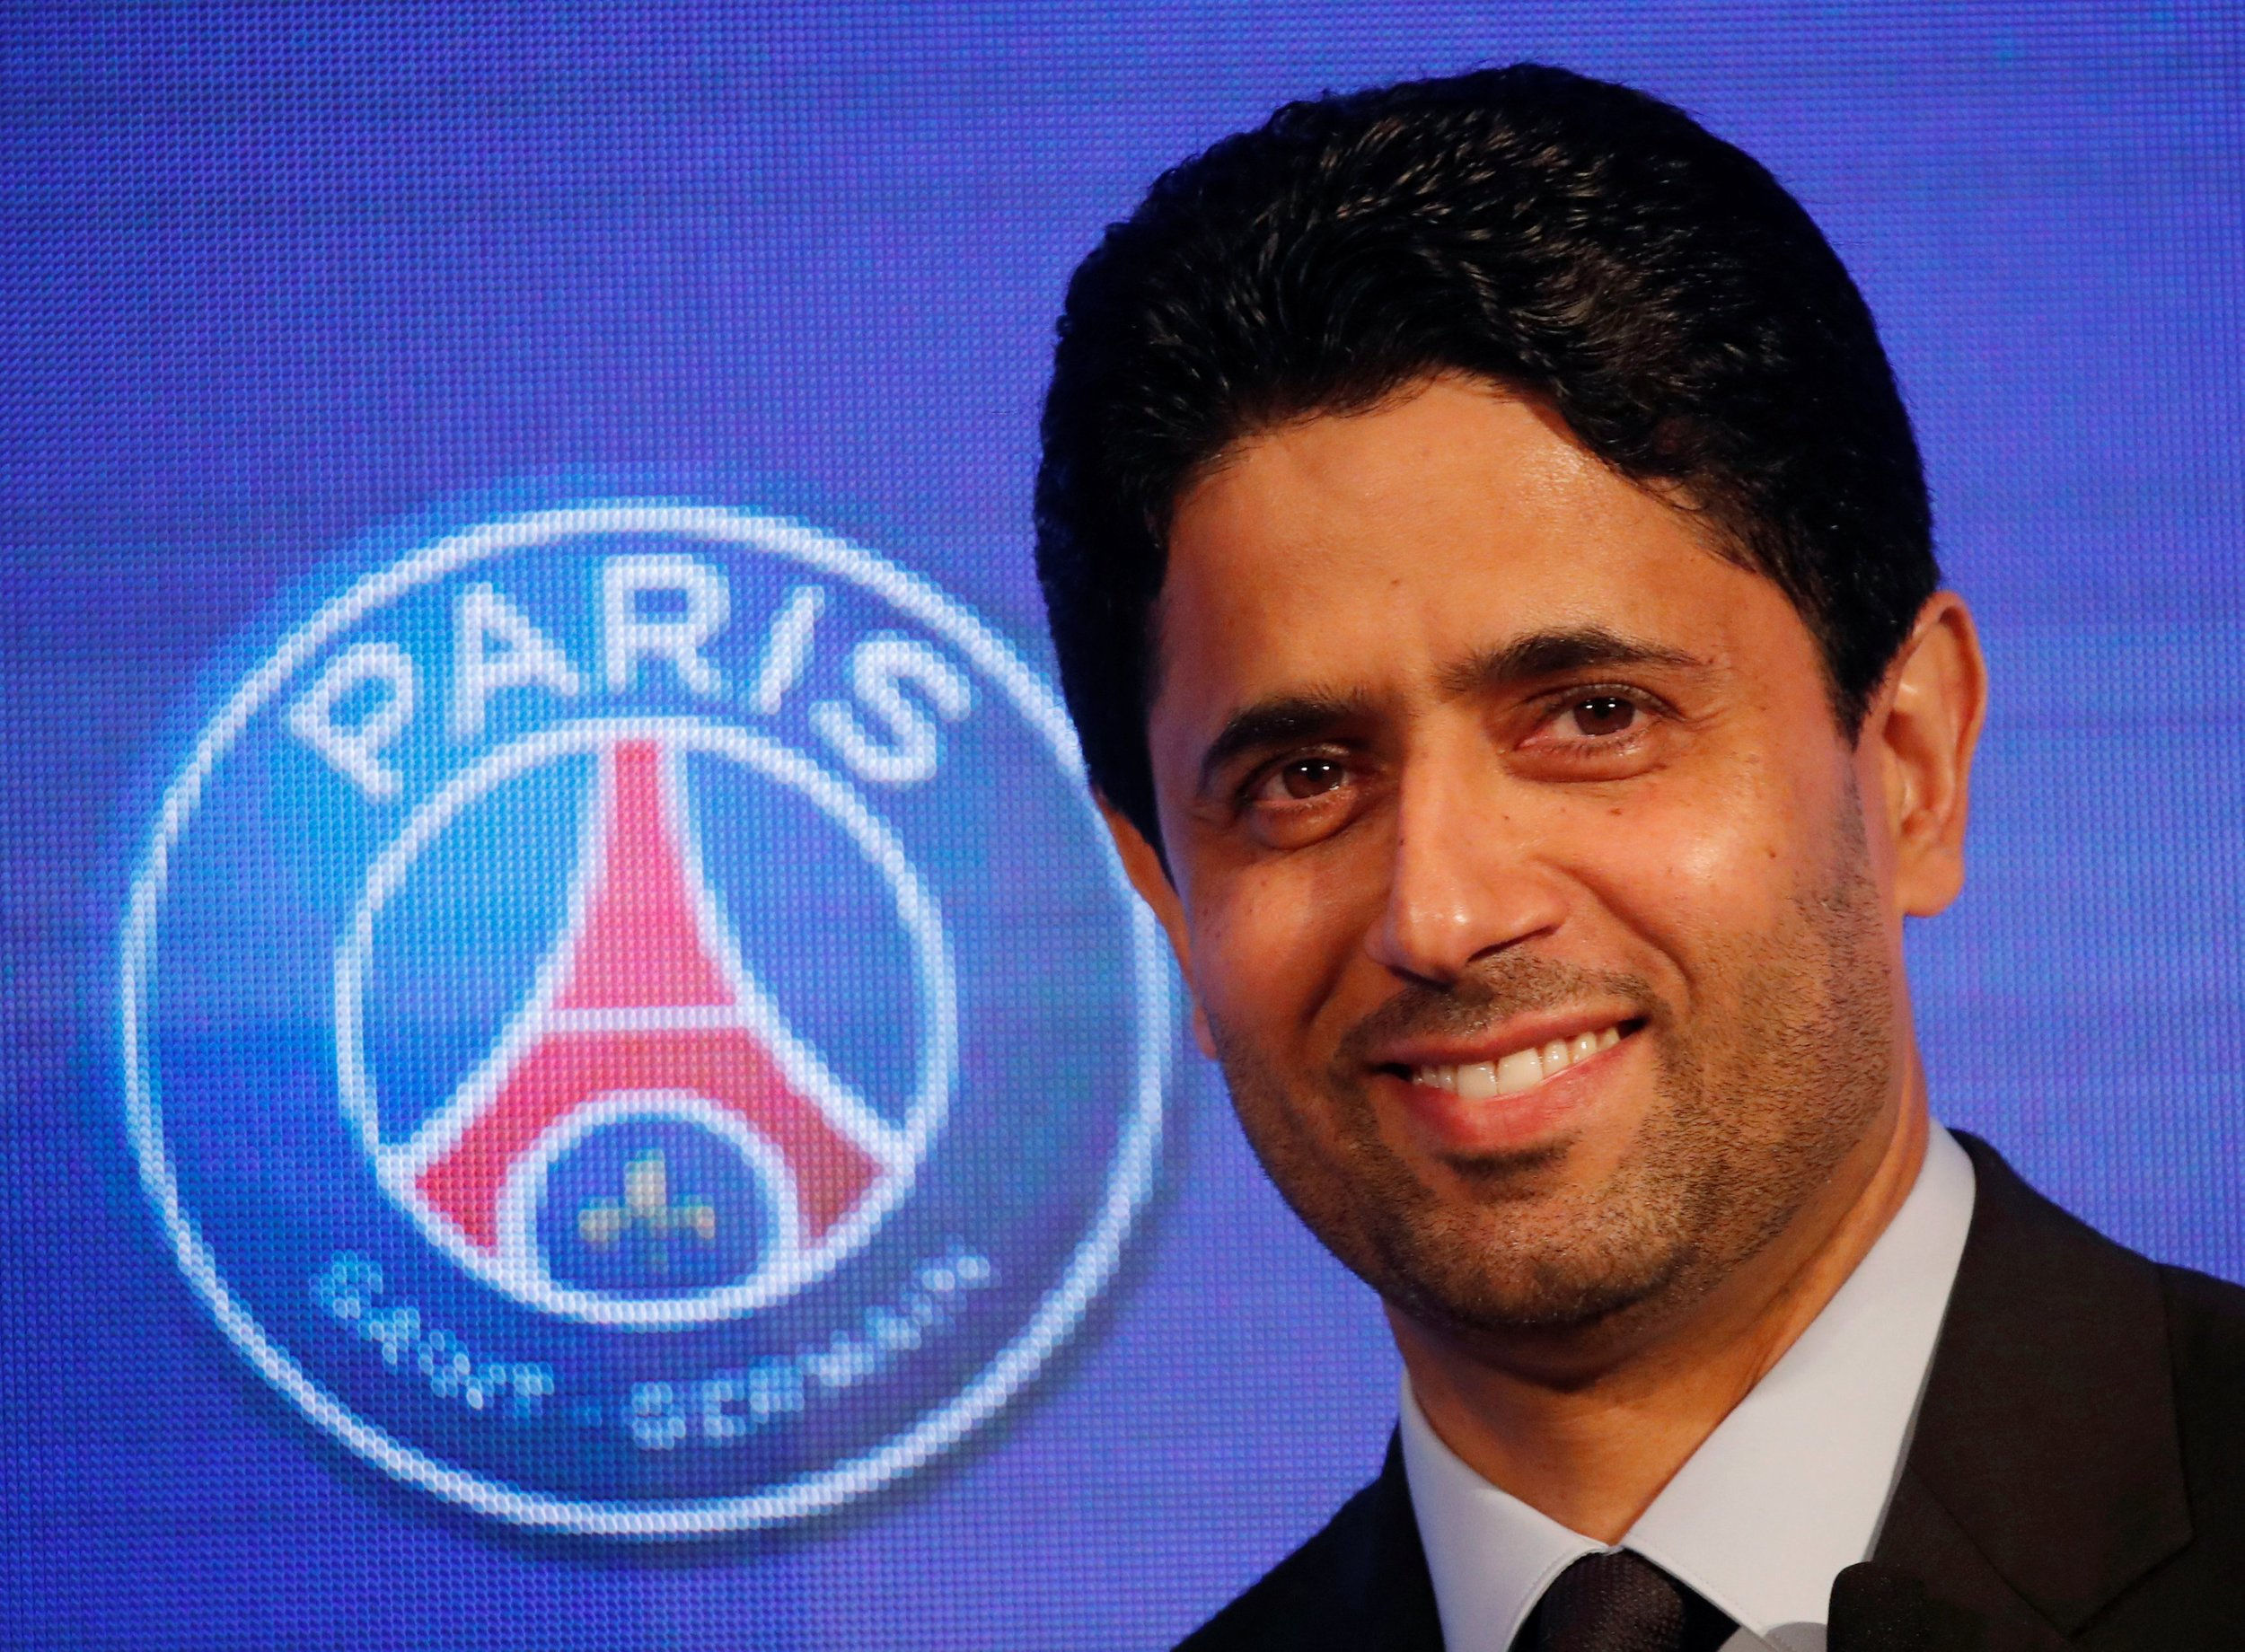 Nasser Al-Khelaifi - chairman of Qatar Sports Investments and president of Paris Saint-Germain who have been investigated for breaches of Financial Fair Play (FFP) regulations.